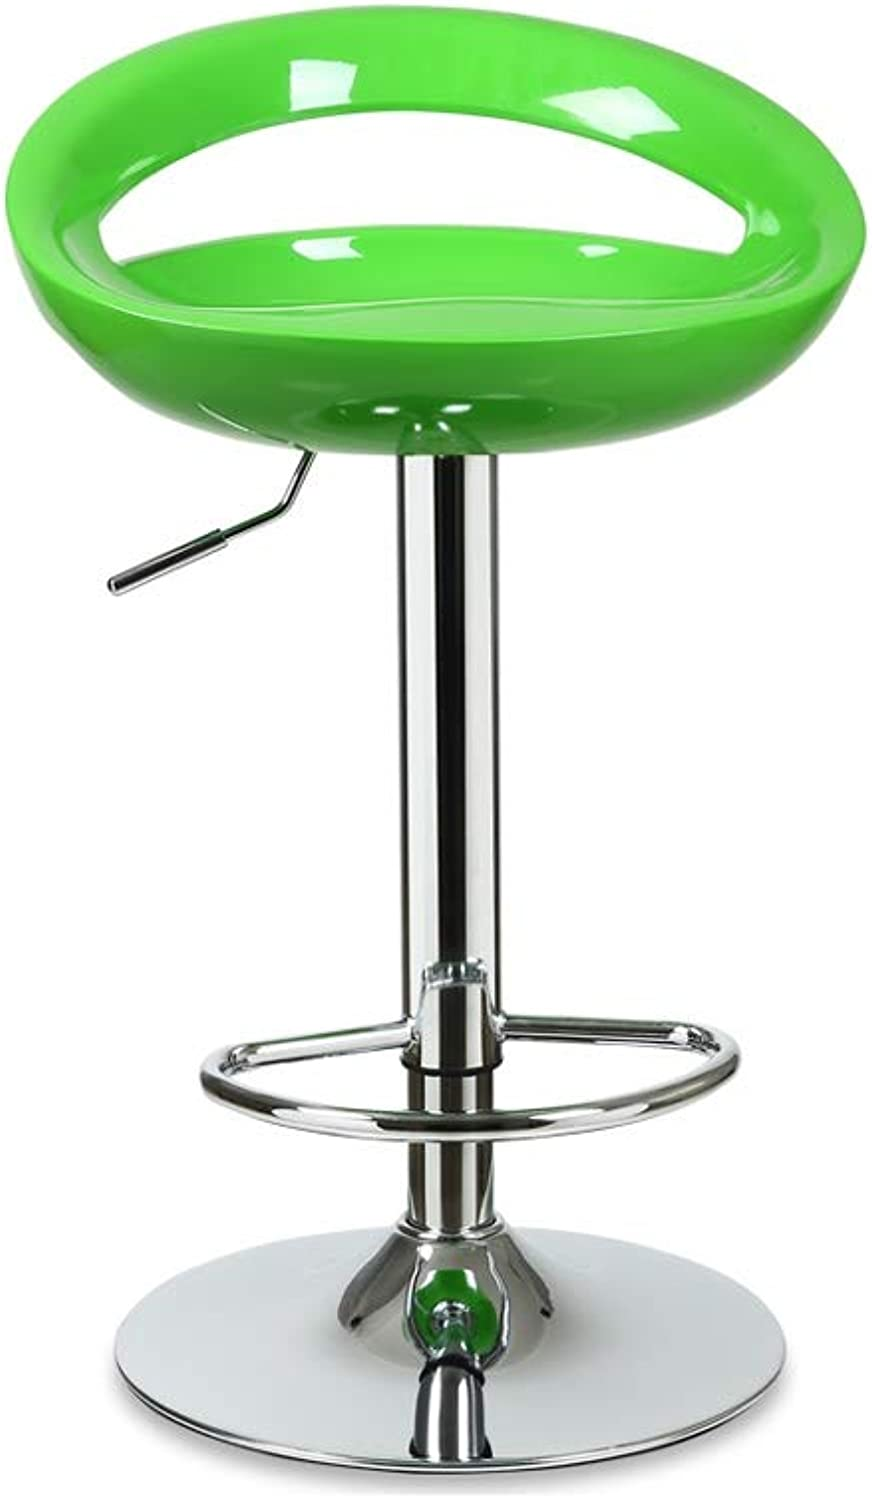 Stool Home redating Lift Bar Chair Extended Backrest High Elastic Sponge ABS Resin Chair 8 color 38.5cm  80-100cm (color   Green)